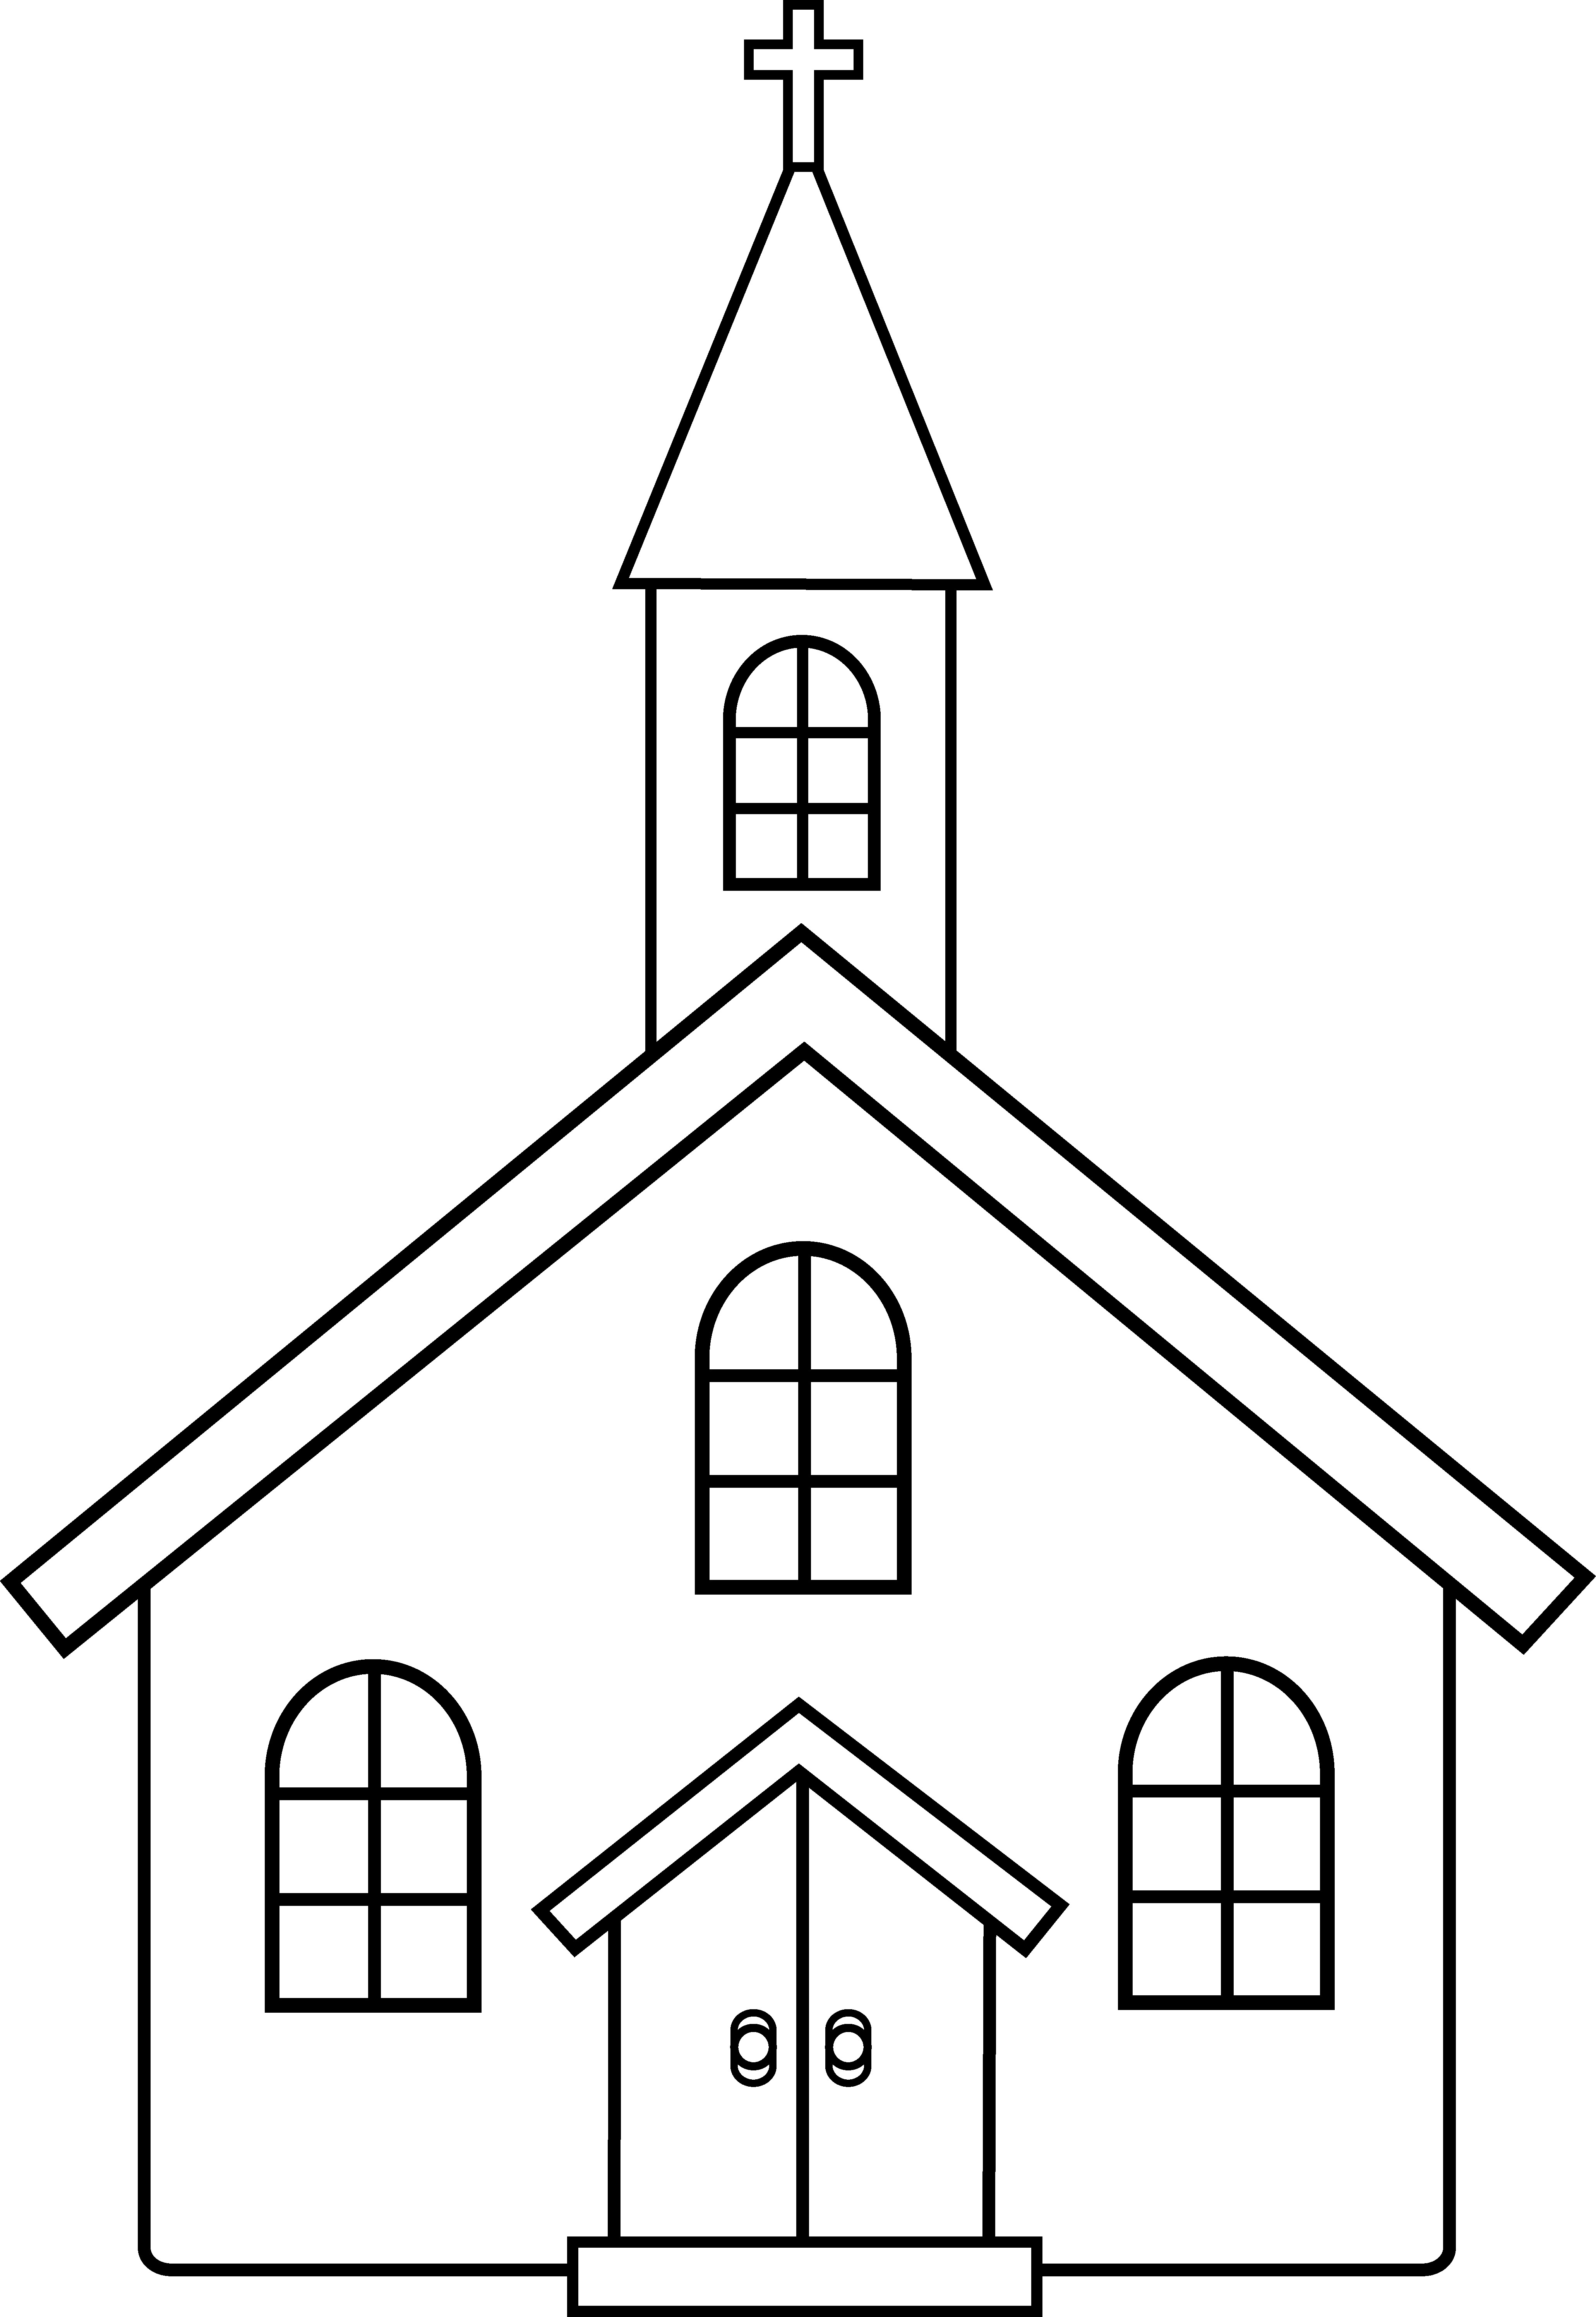 Black And White Free Christian Clip Art Christian Clip A...